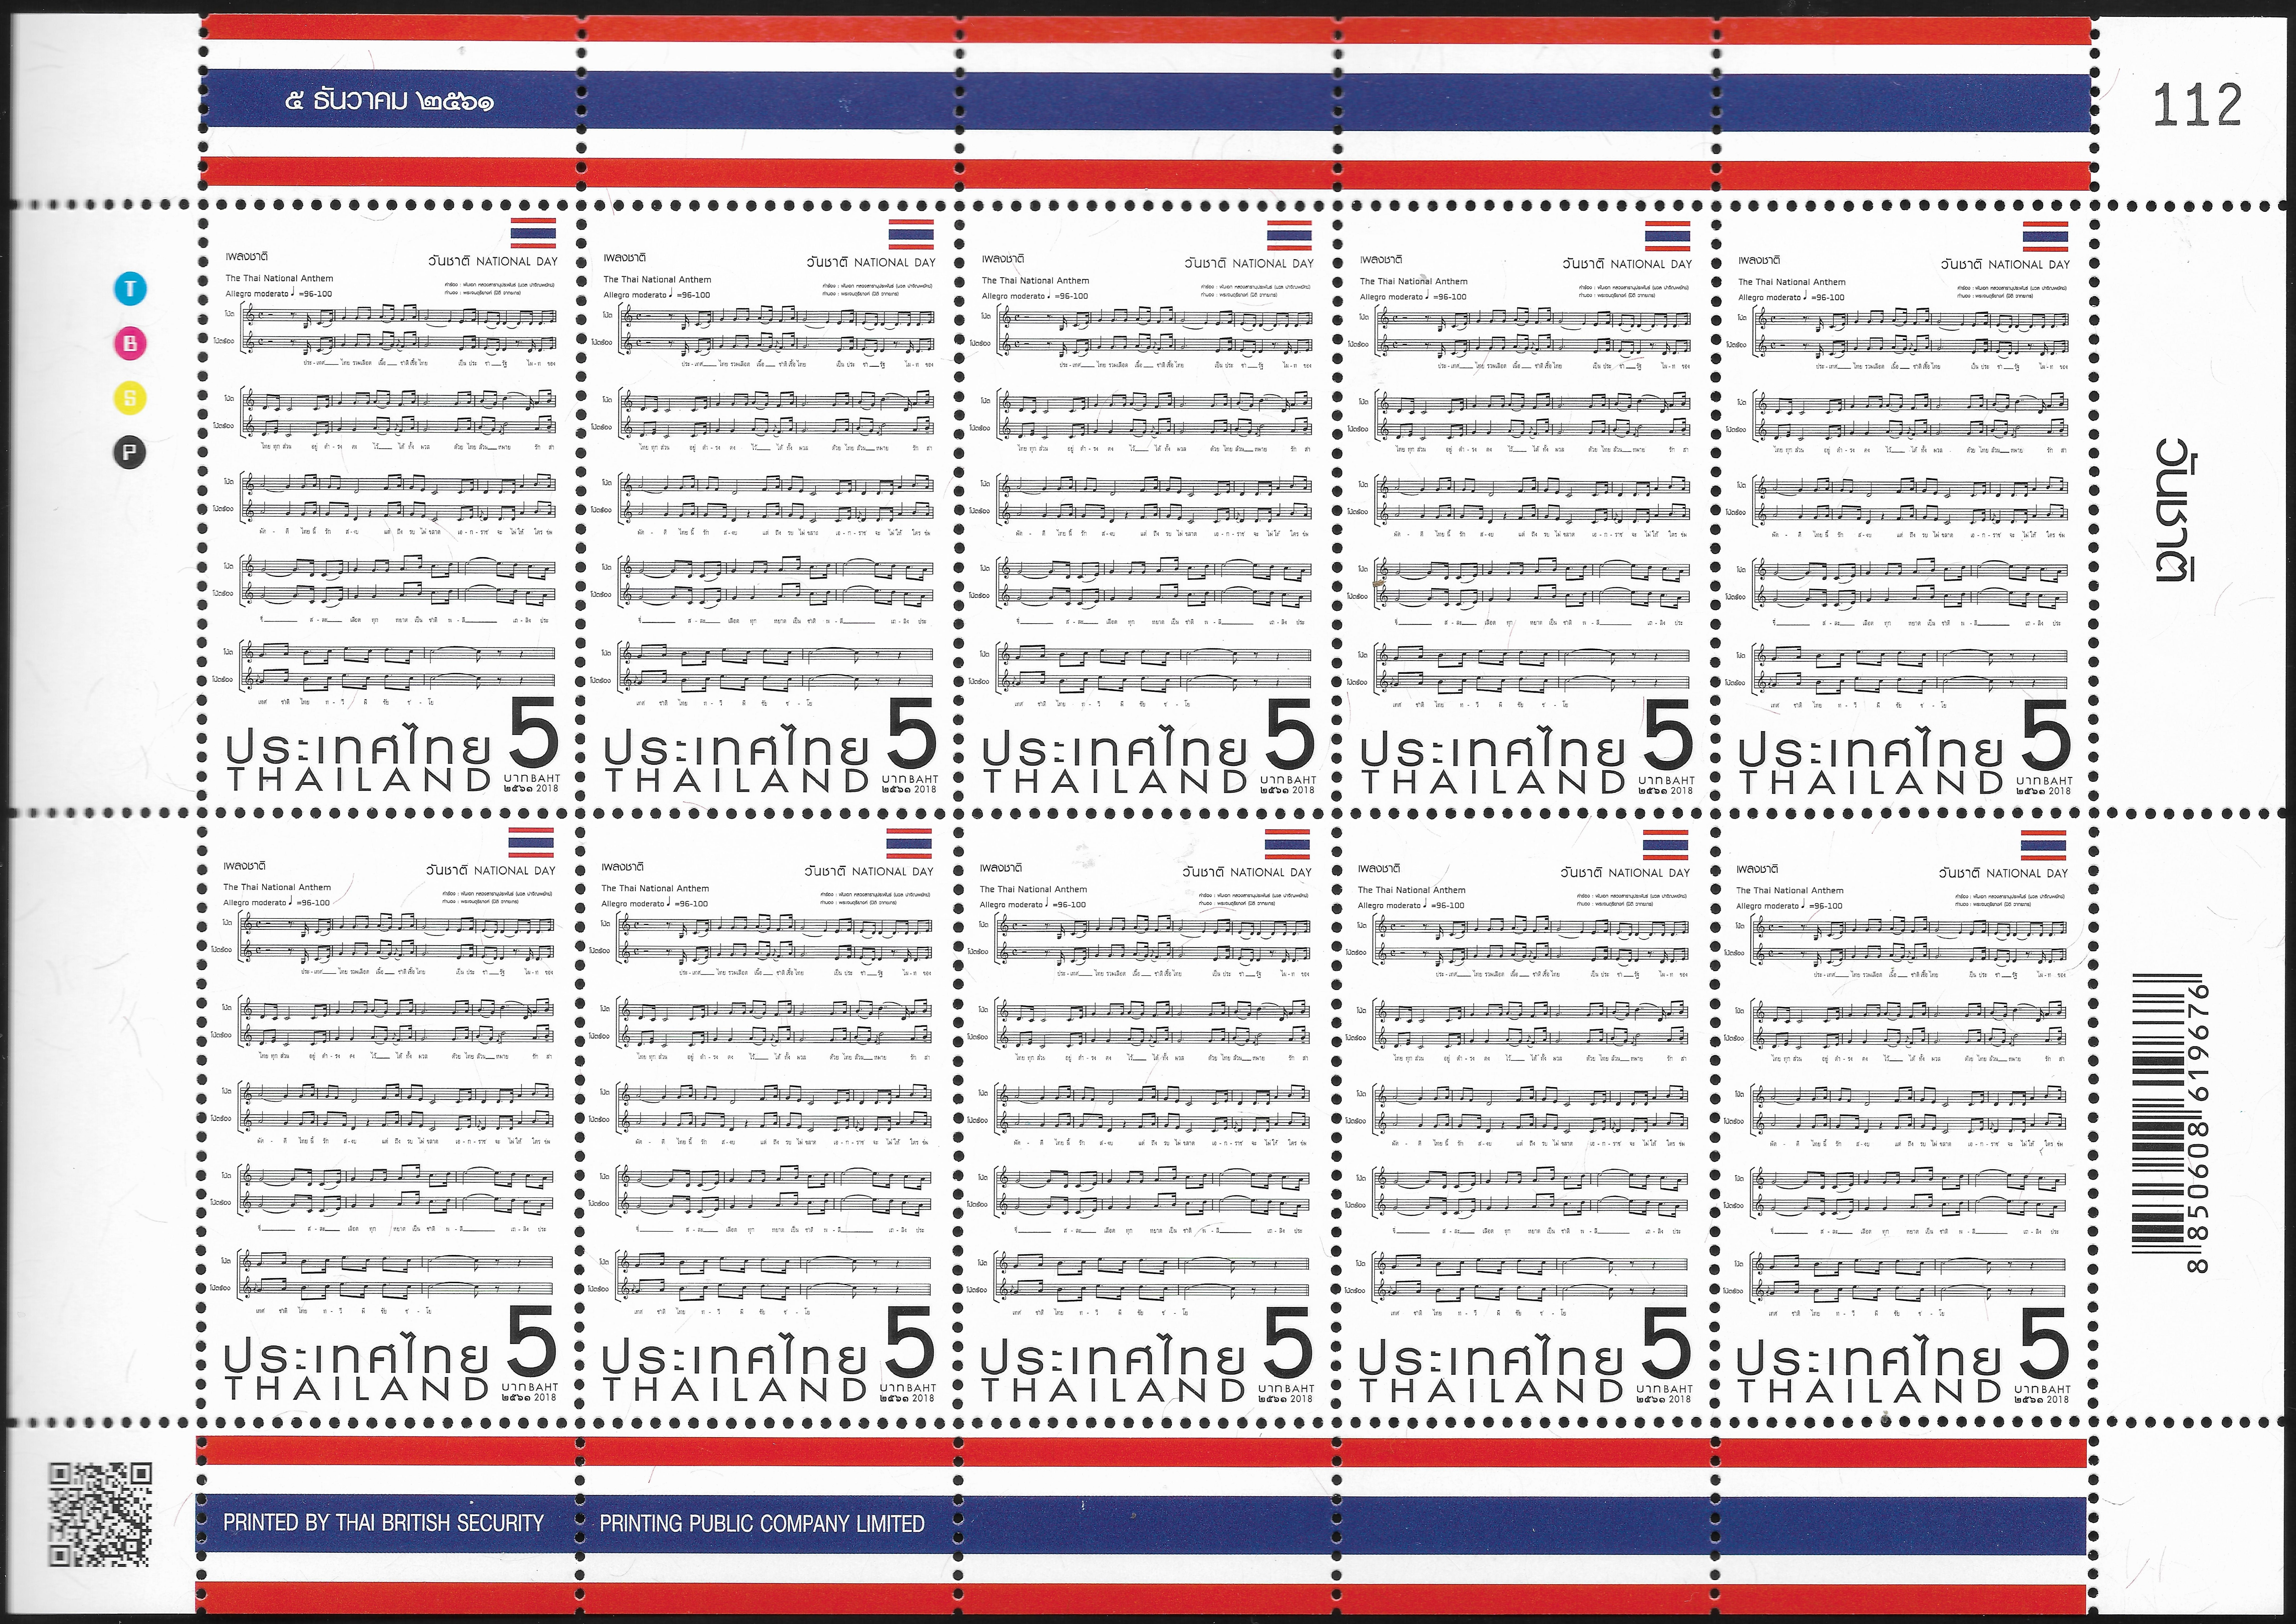 Thailand - Thailand Post #TH1160 (2018) full sheet - released December 5, 2018